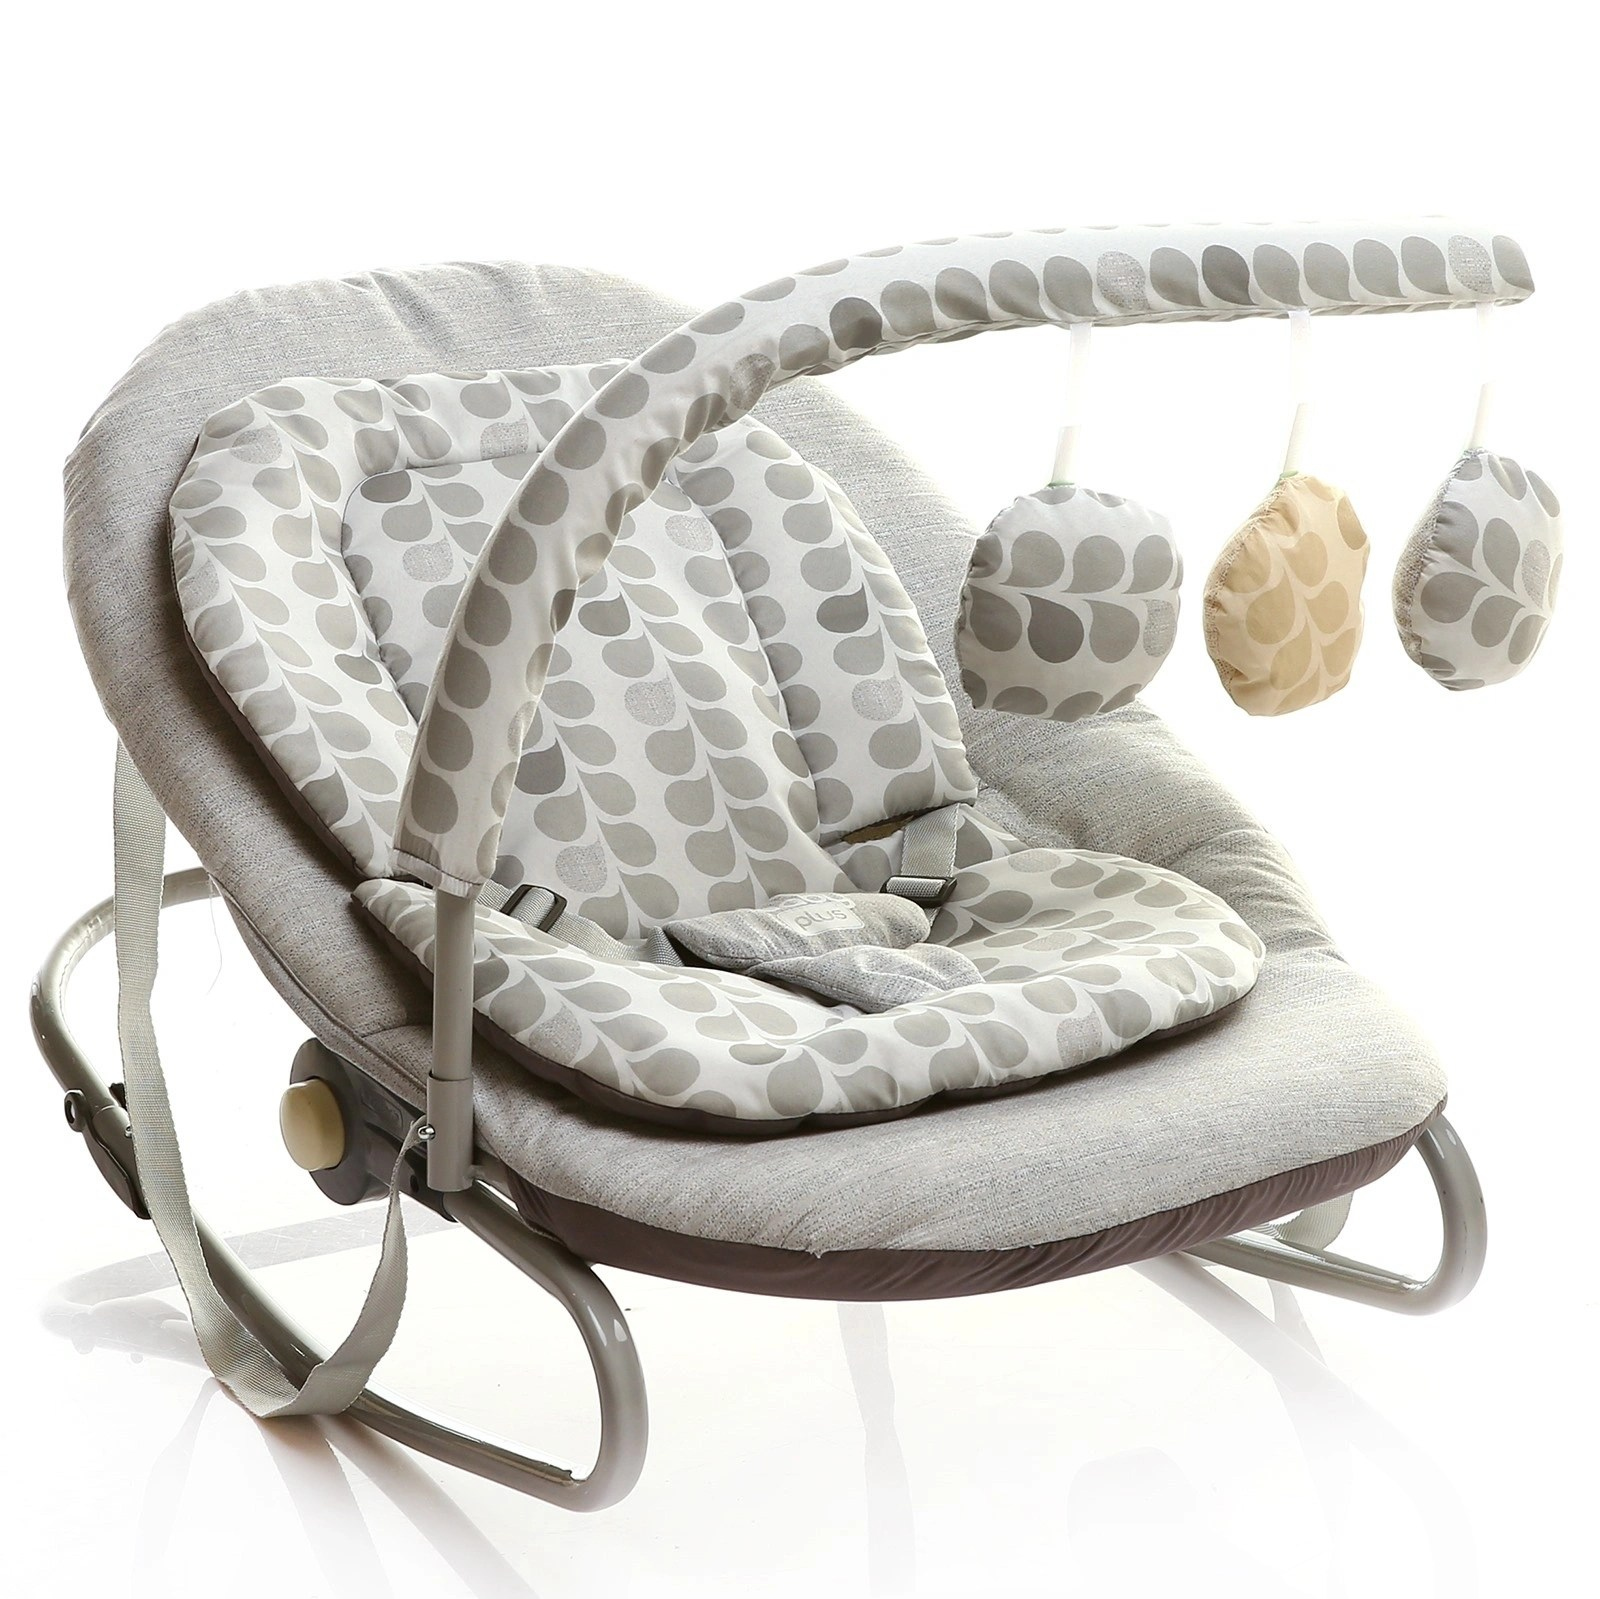 BabyPlus Lounge Baby Bouncer Chair with Toys